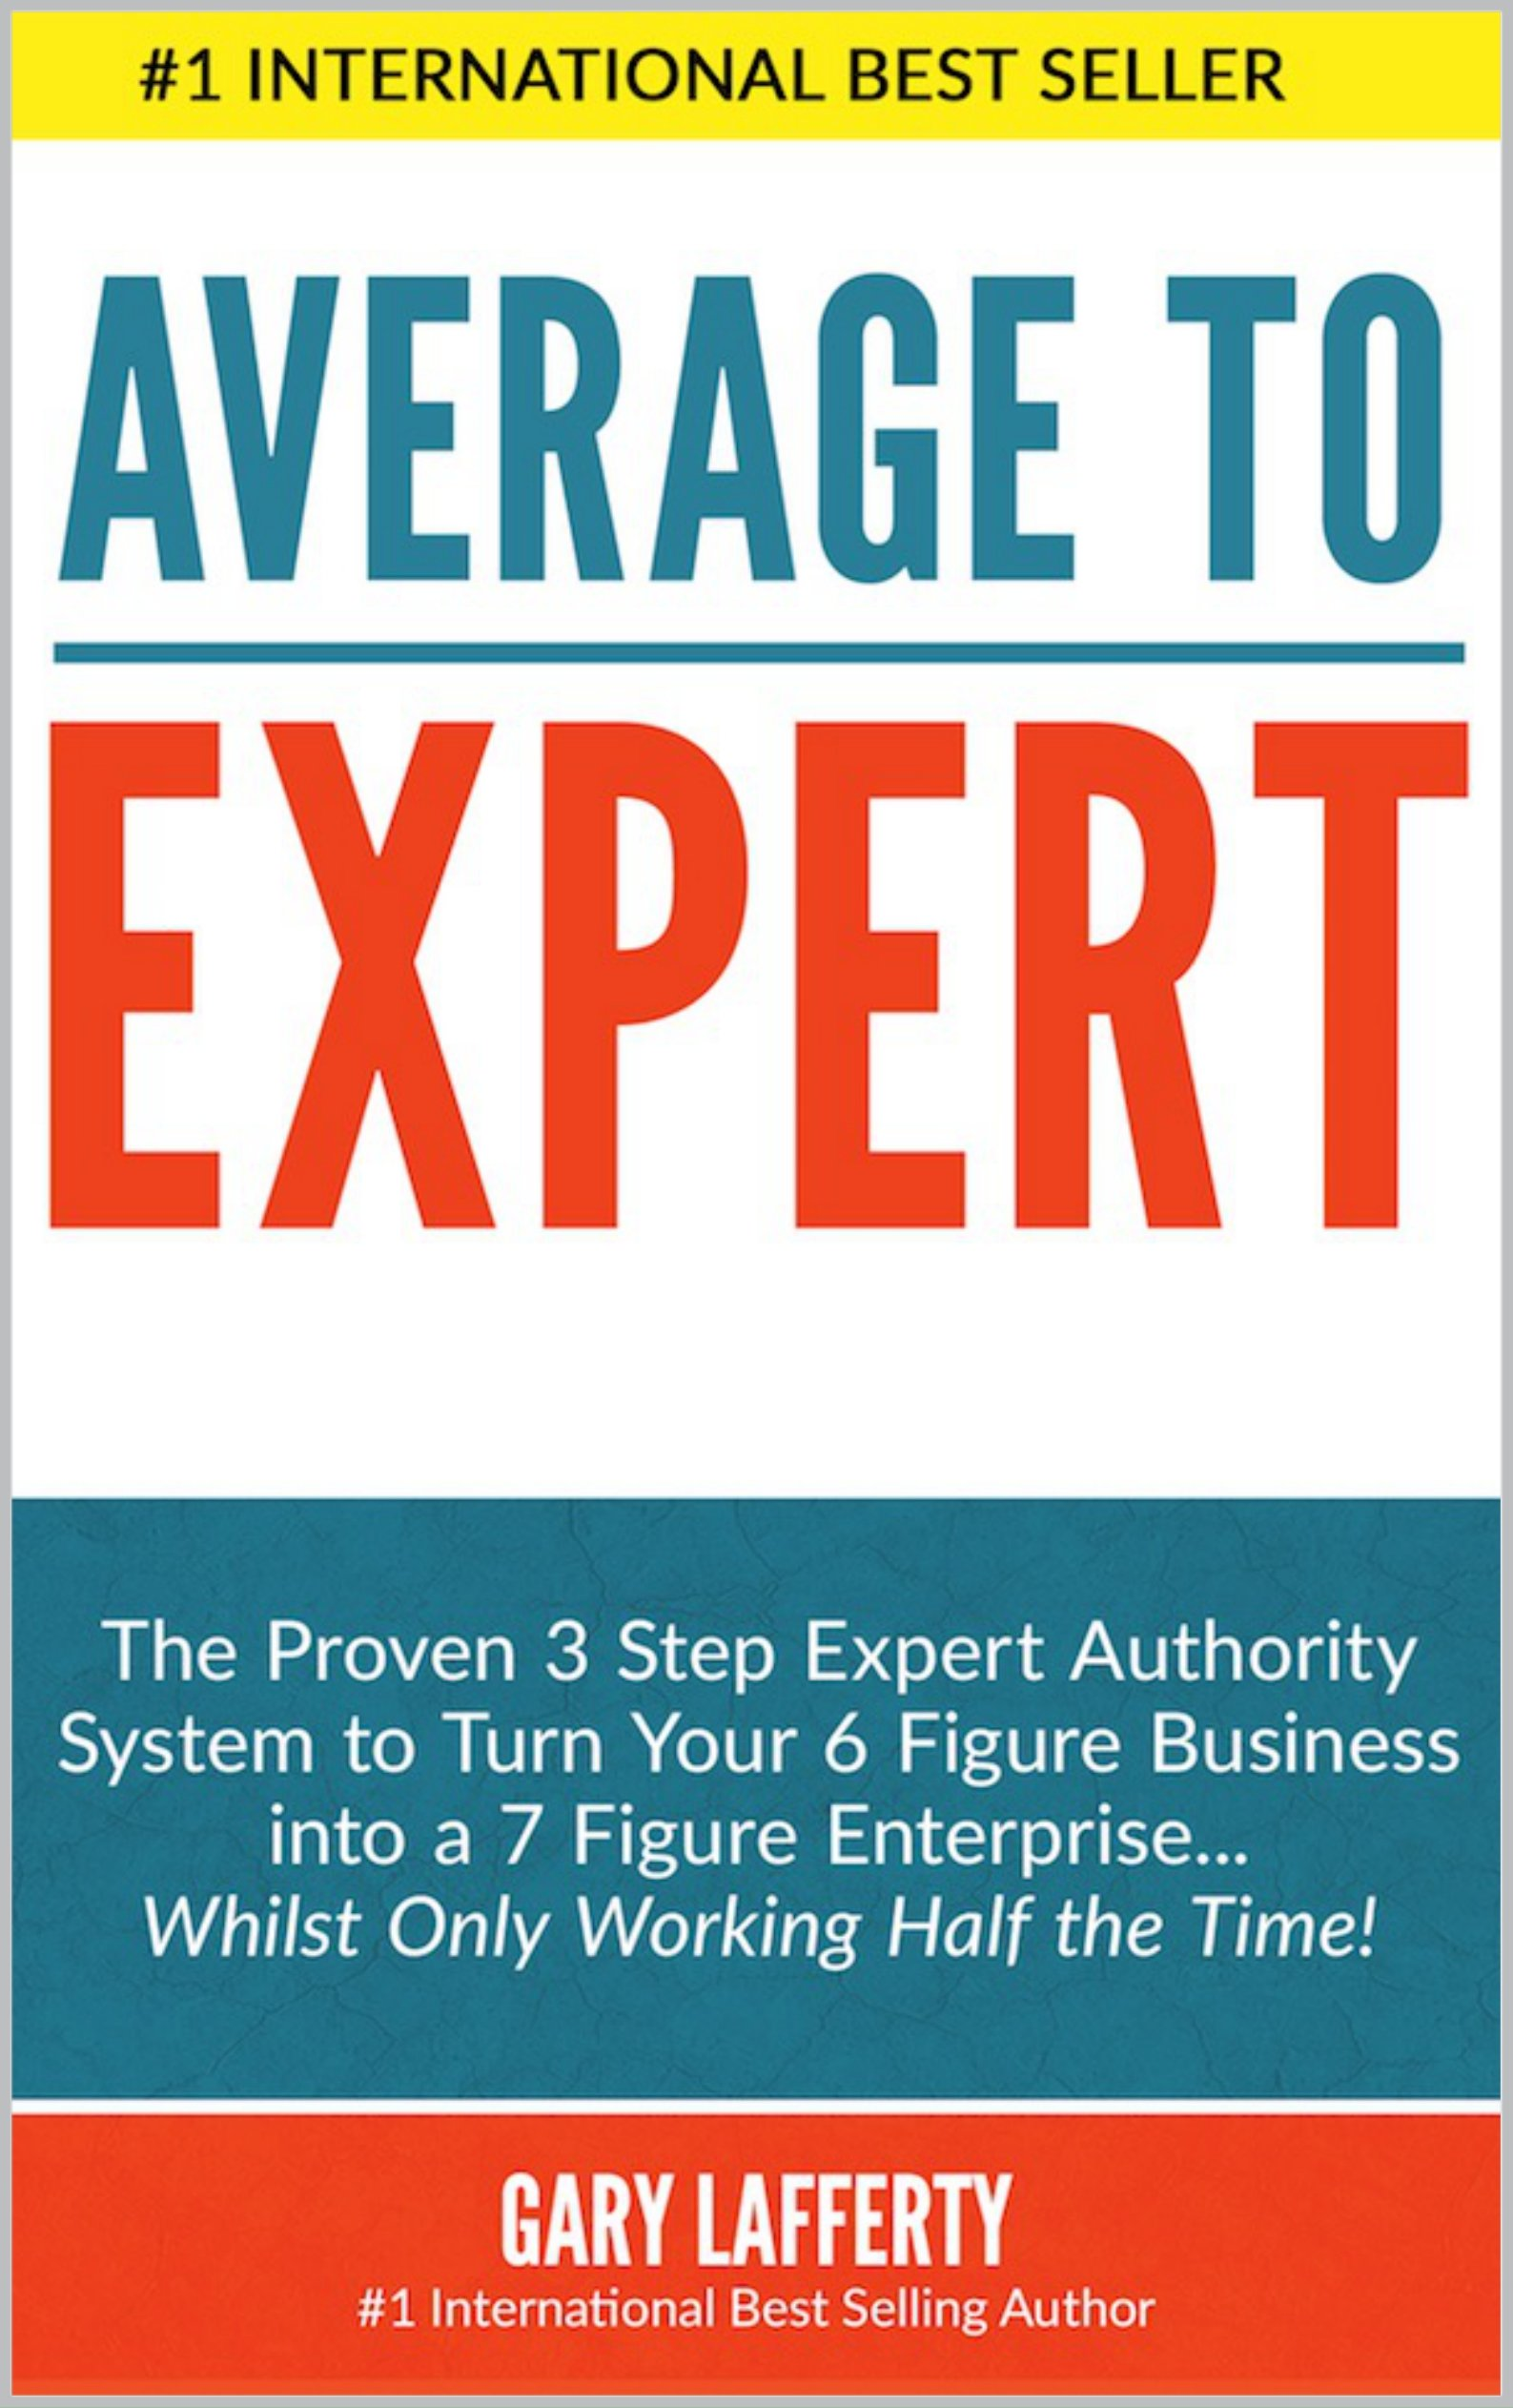 Average to EXPERT: The Proven 3 Step Expert Authority System to Turn Your 6 Figure Business into a 7 Figure Enterprise...Whilst Only Working Half the Time!